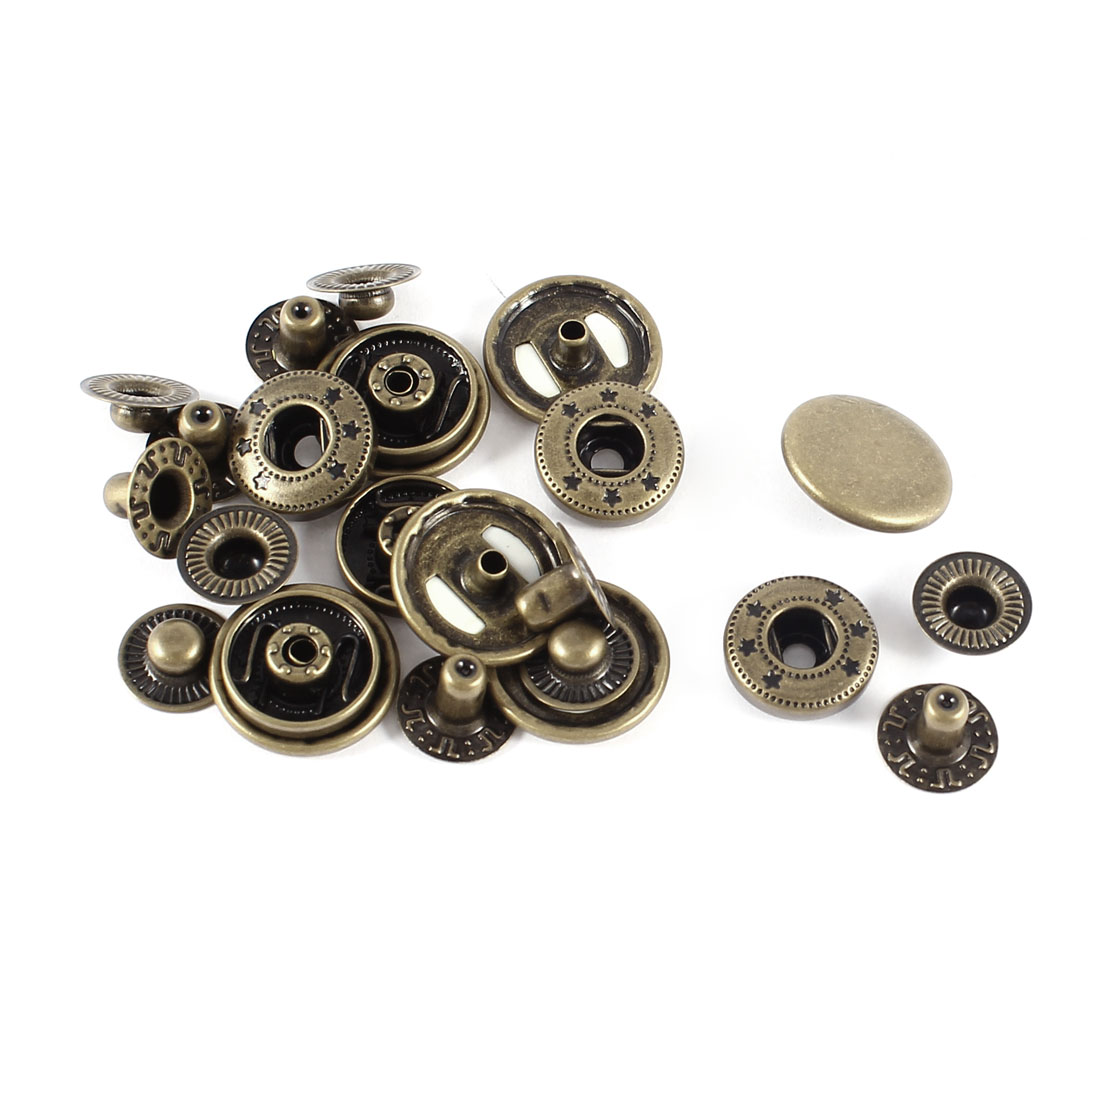 6sets Retro Style Snap Fasteners Popper Stud Press Sewing Buttons 17mm